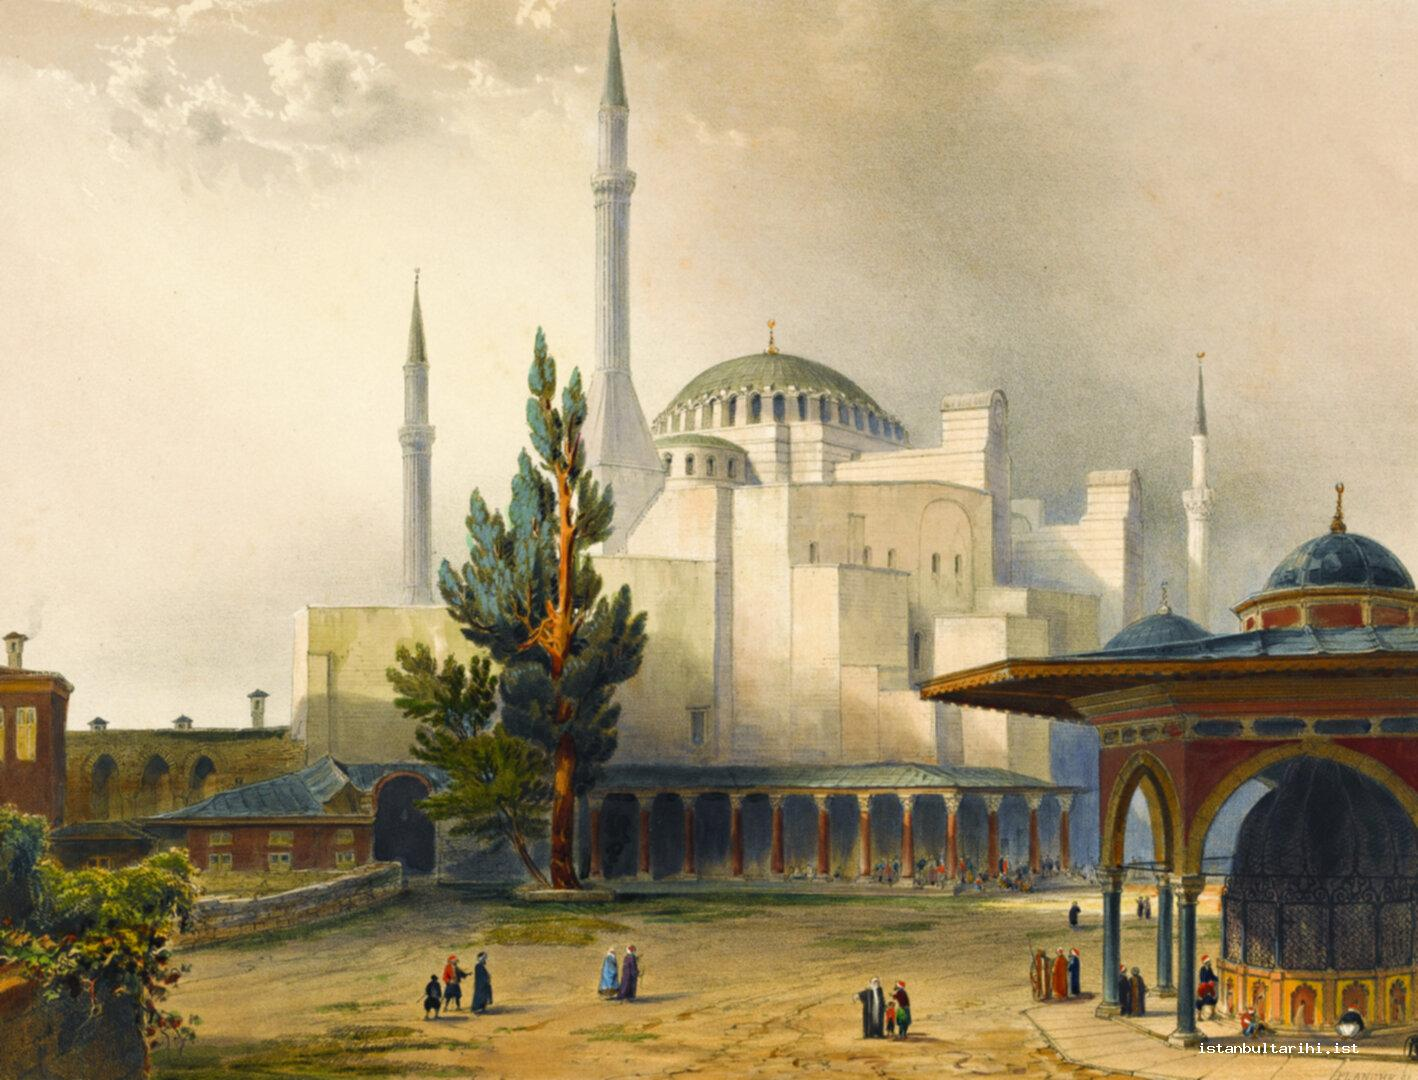 6- The outer view of Hagia Sophia which was transformed into a mosque by Sultan Mehmed II (Fossati)